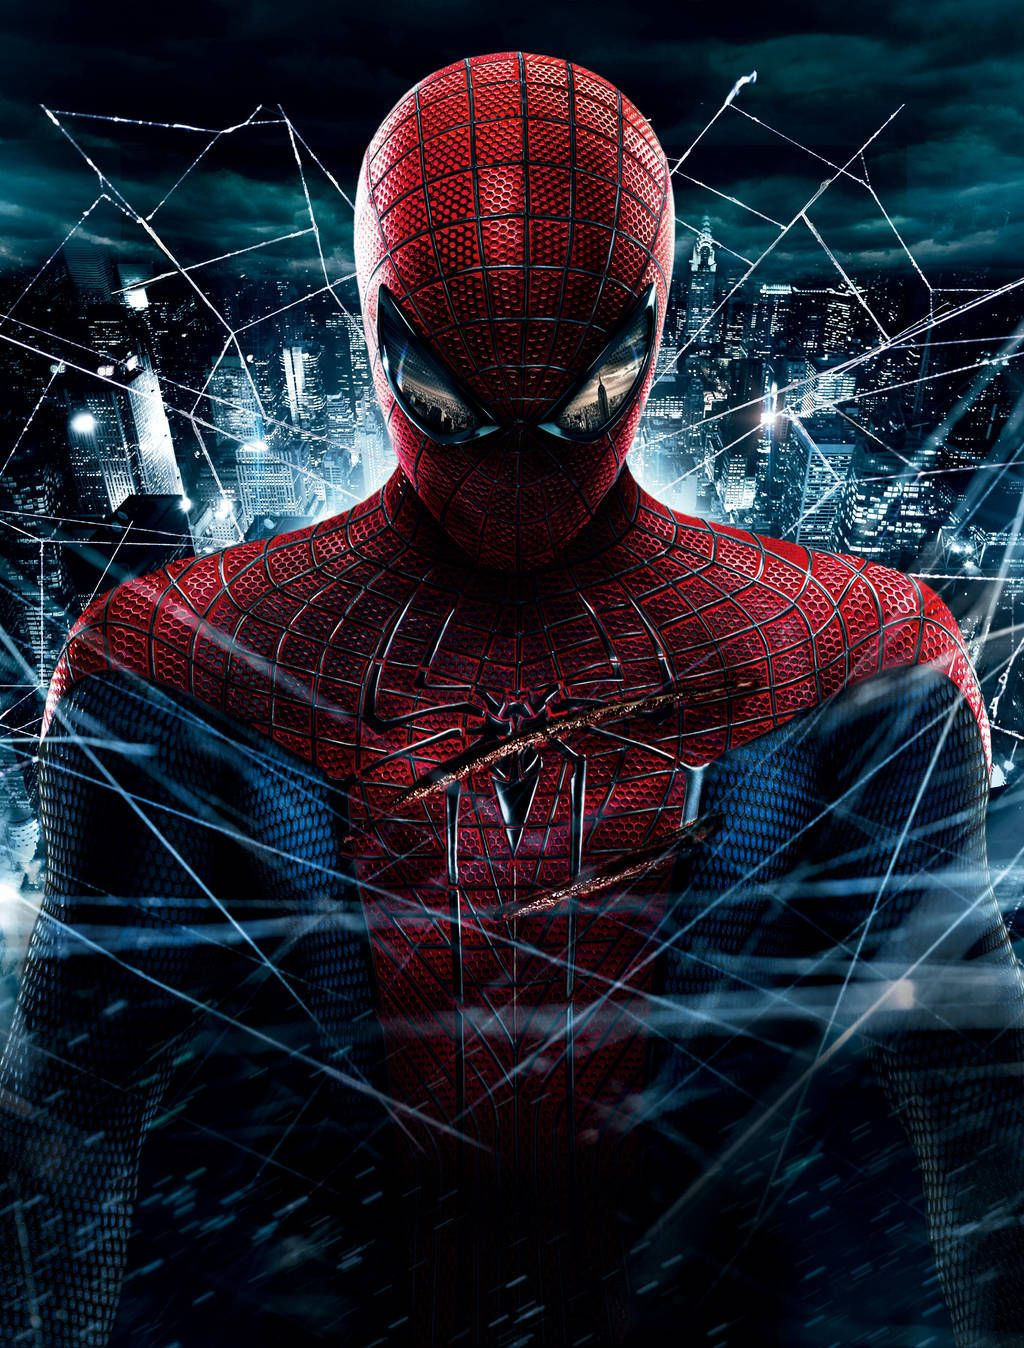 The Amazing Spider Man Hi Res Textless Poster By Ihaveanawesomename Amazing Spiderman Movie Spiderman Amazing Spiderman